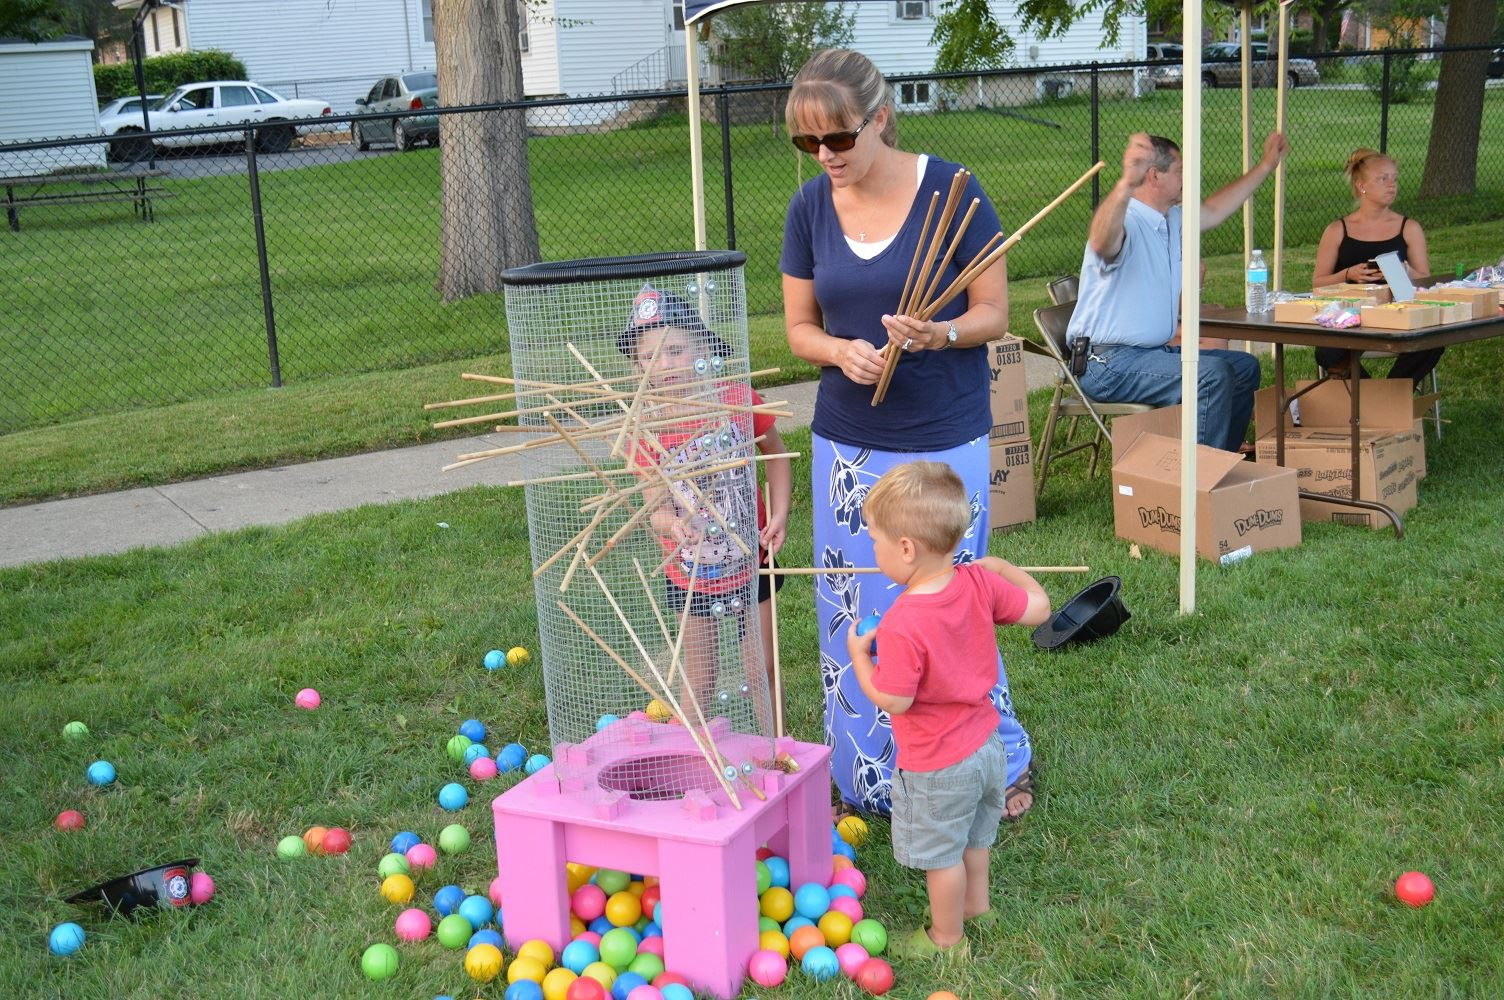 Community members play life-sized Kerplunk at a National Night Out event at the Iowa Community Center, Aug. 2.